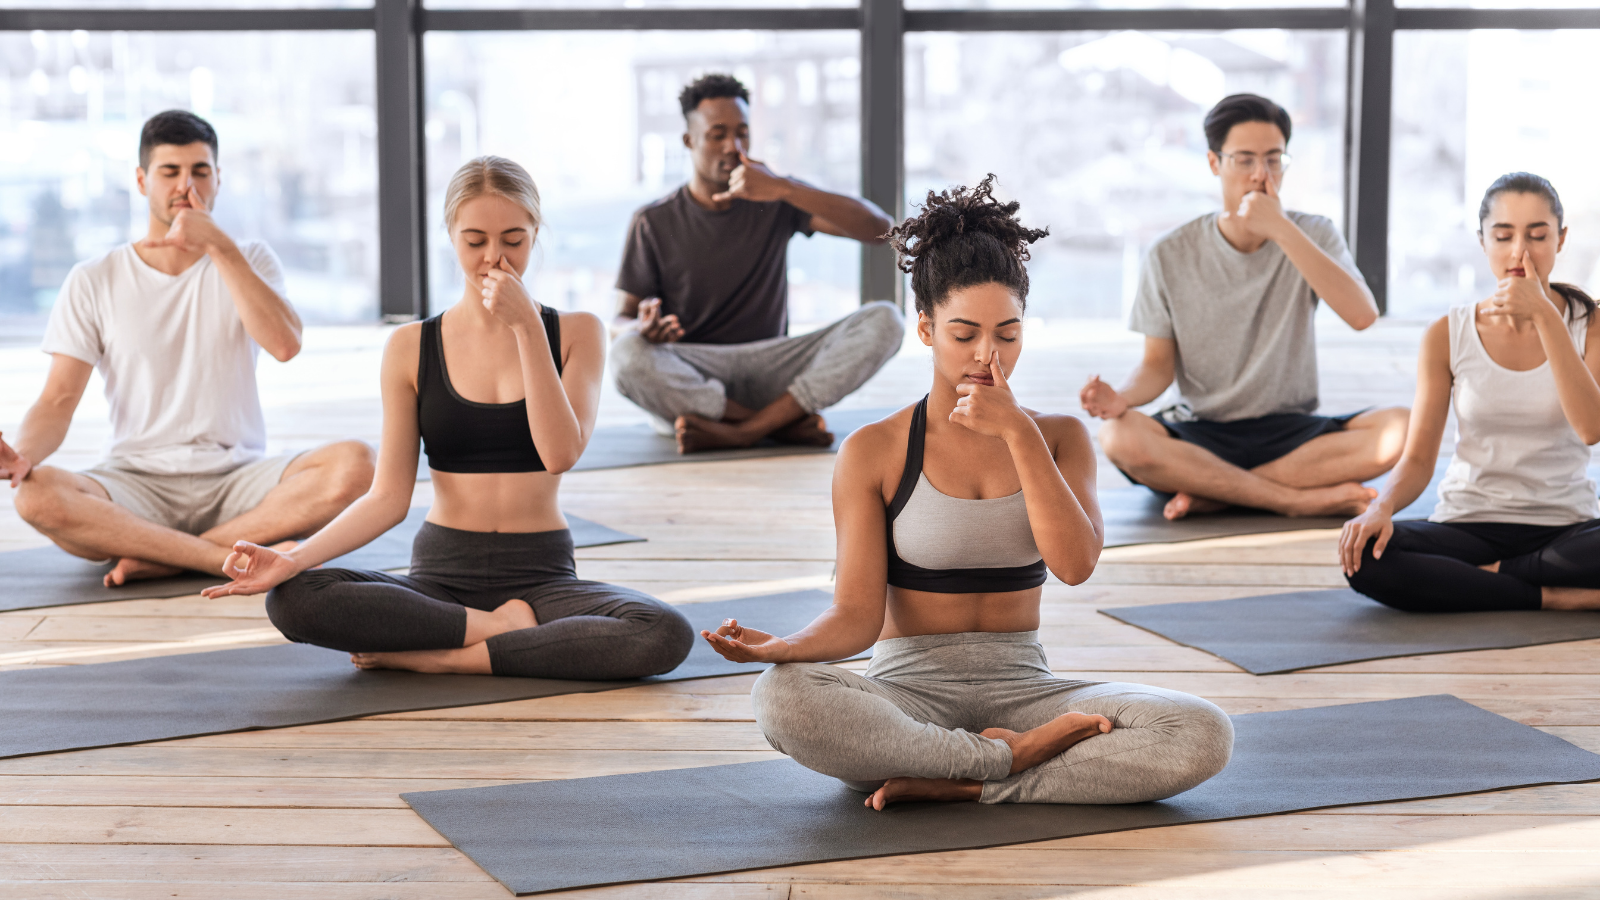 Yoga students in class practicing pranayama breathing to stimulate and balance the vagus nerve and relax